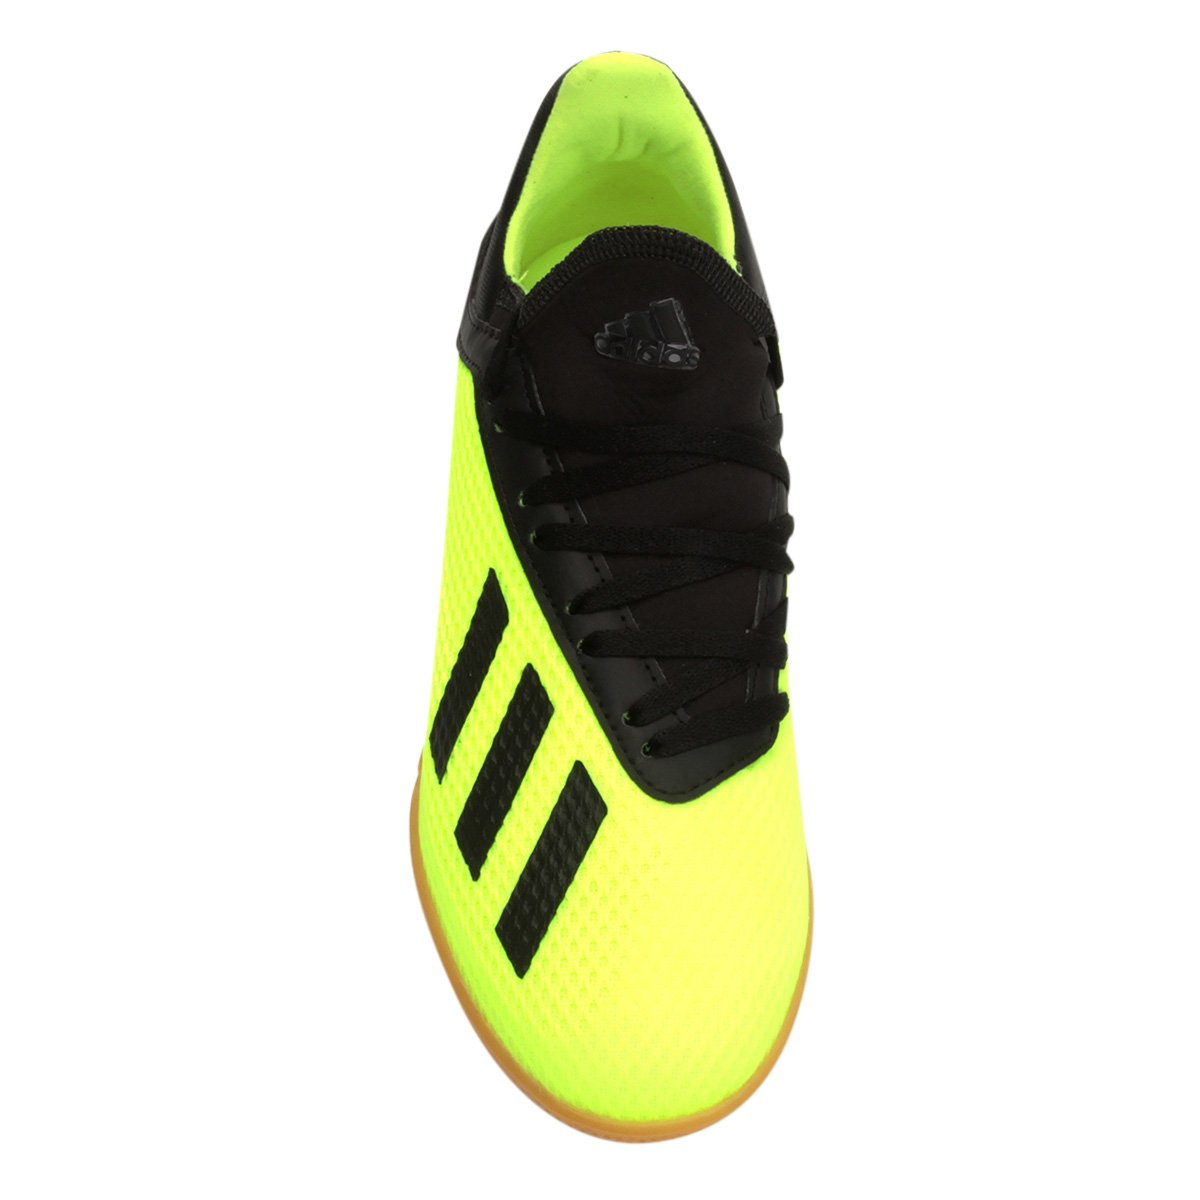 new collection chuteira futsal adidas x tango 18 3 in masculina azul e  amarelo 75400 329bb a7ba43b72d959